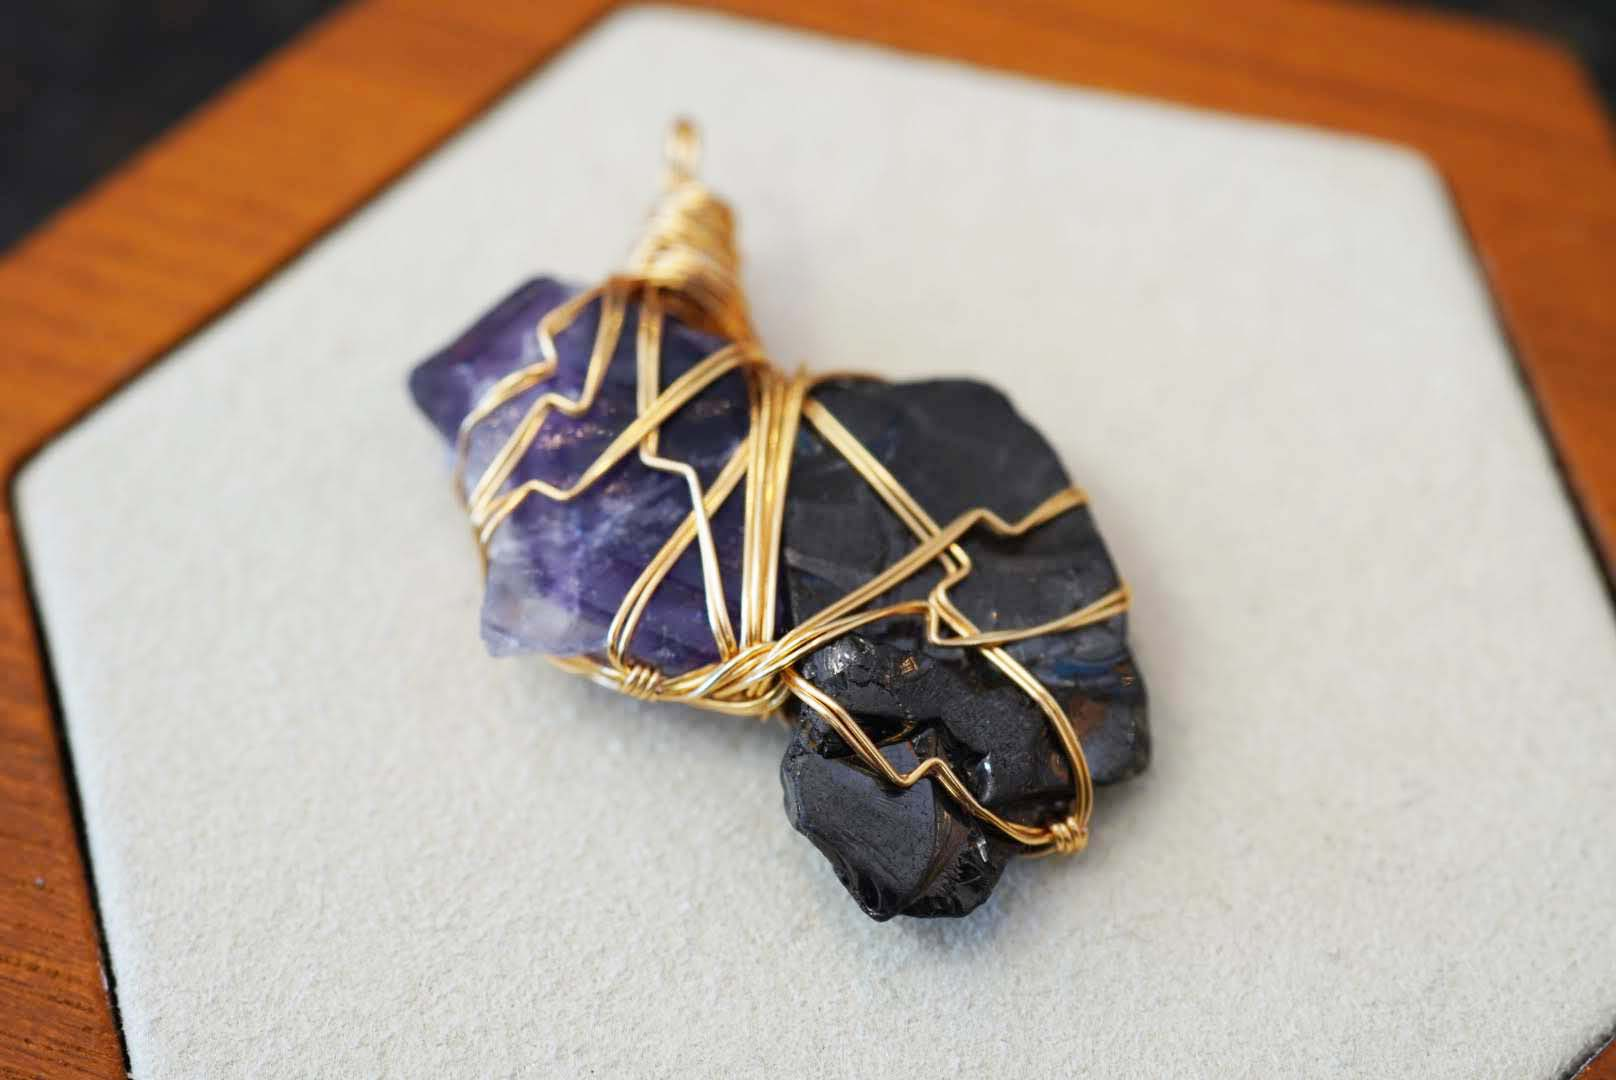 Unity Collection - Gold Fluorite & Shungite - crystalsbysabeads.com